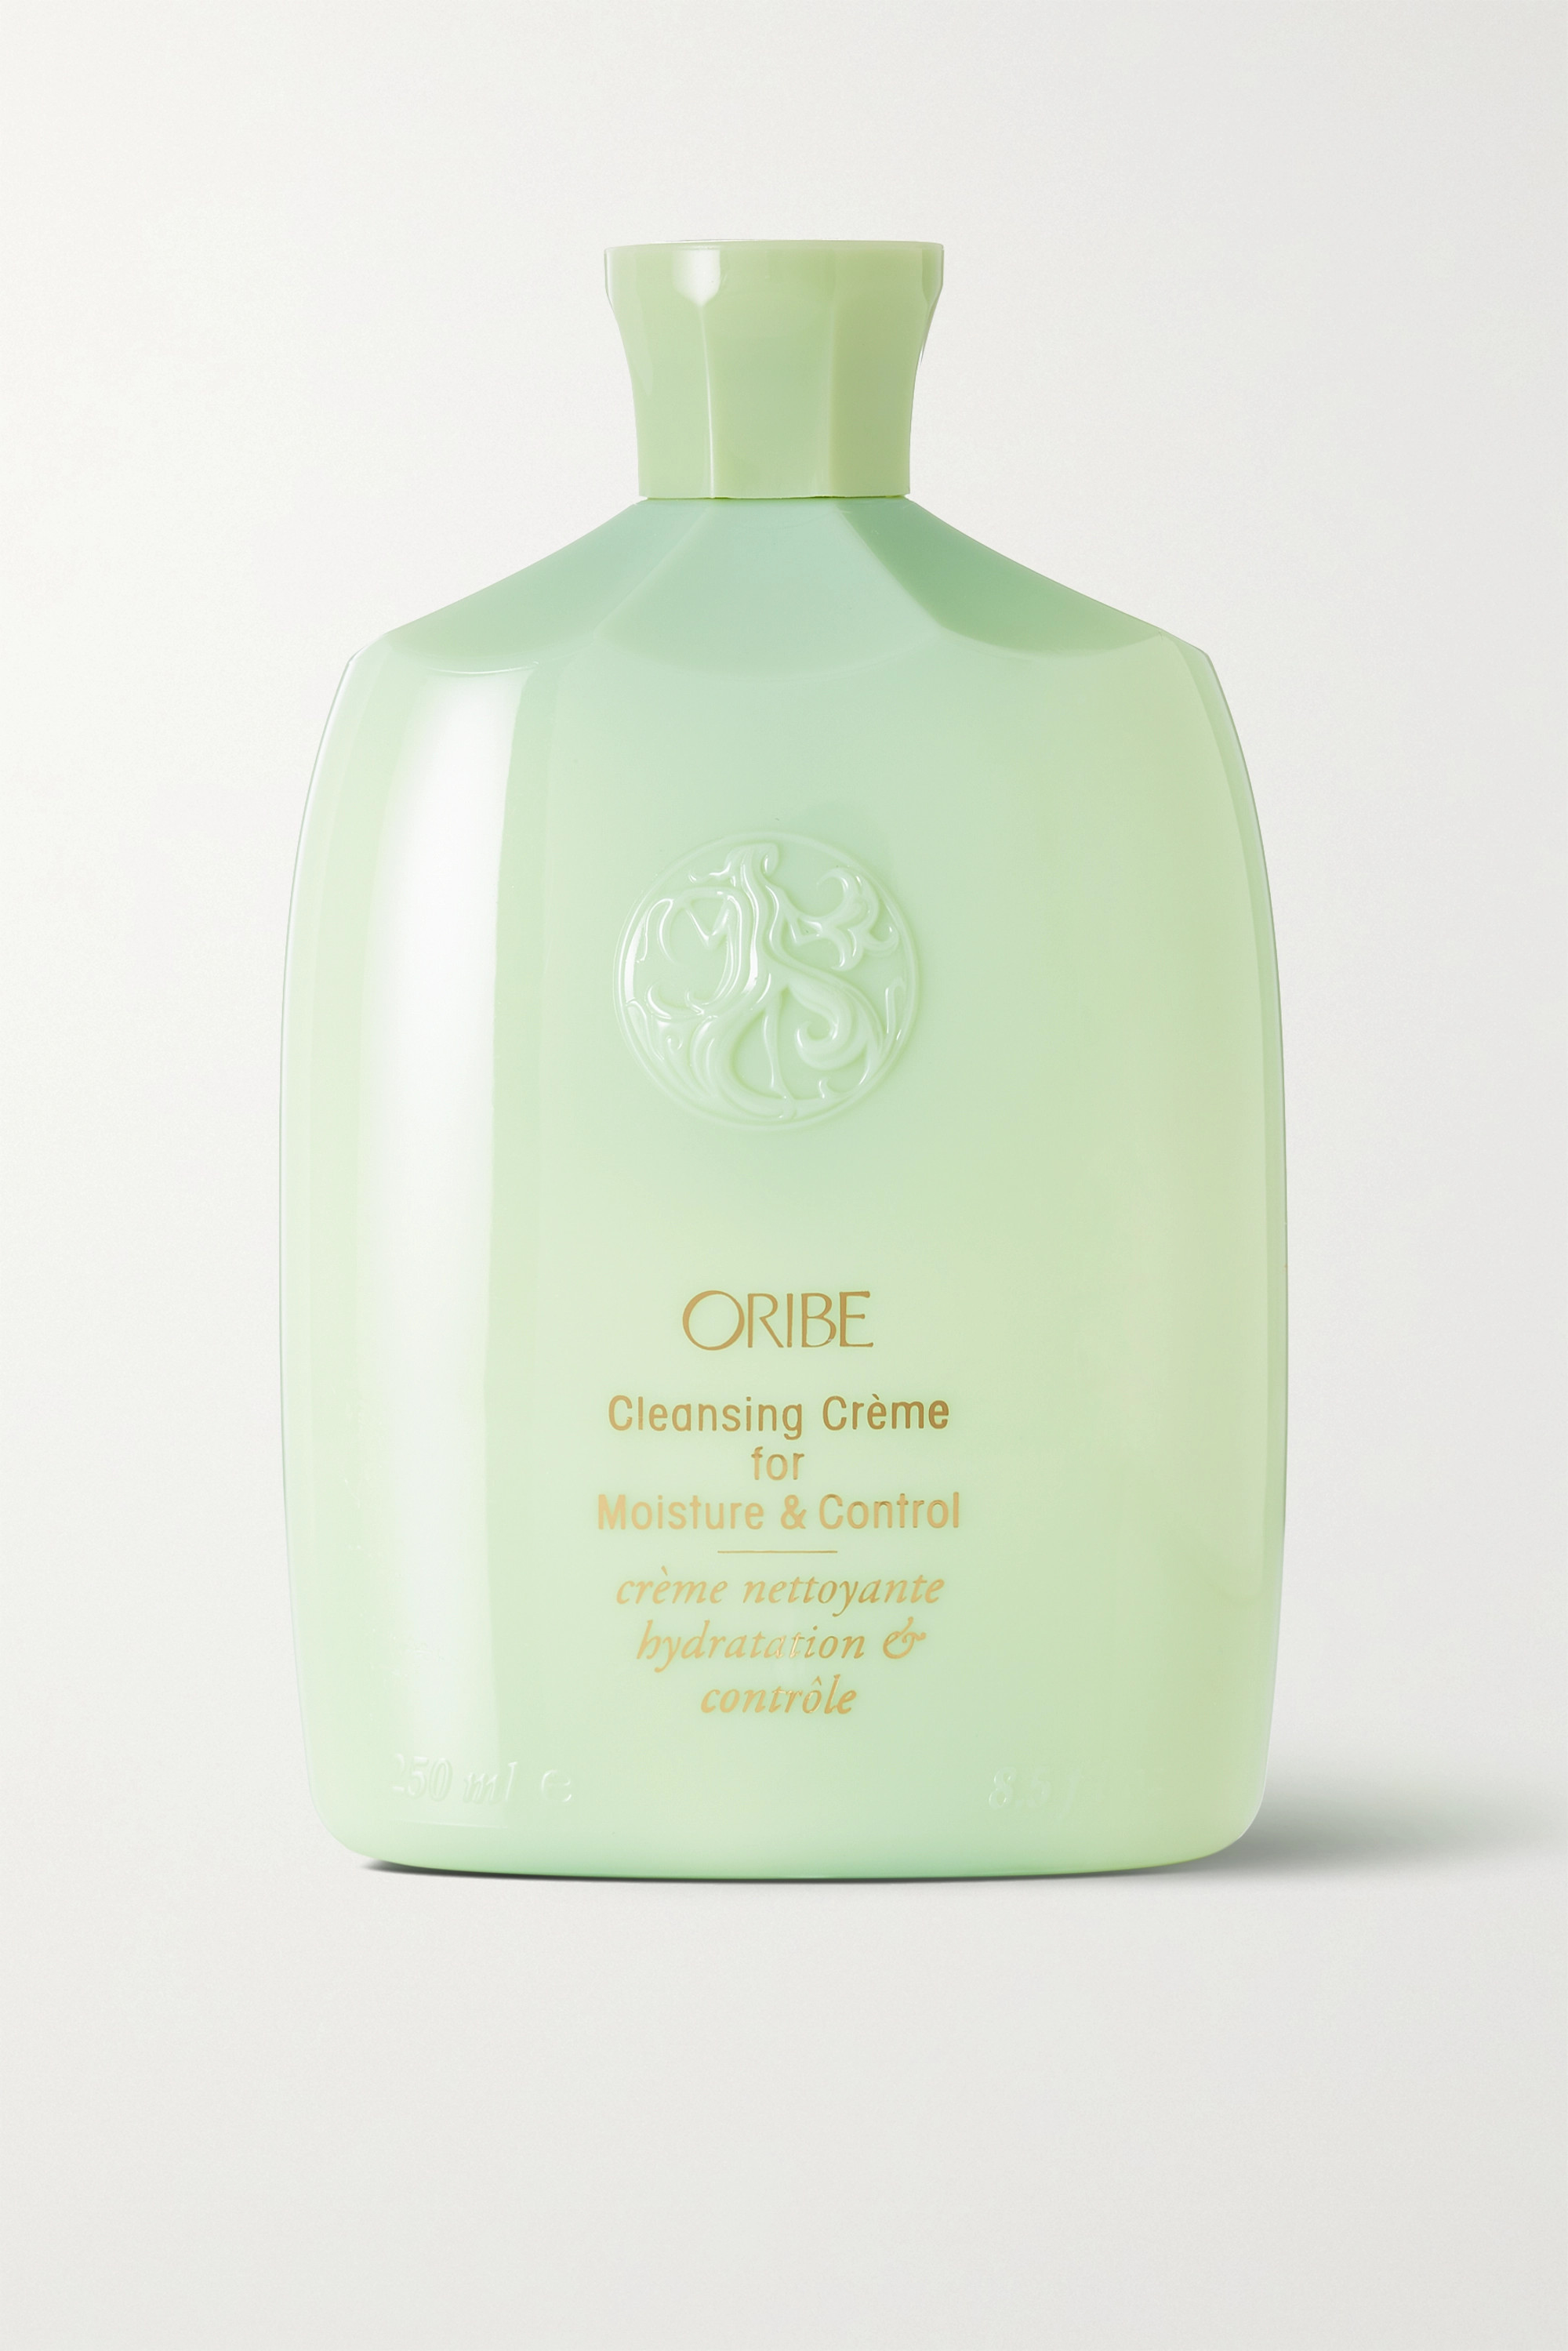 Oribe Cleansing Crème for Moisture and Control, 250ml